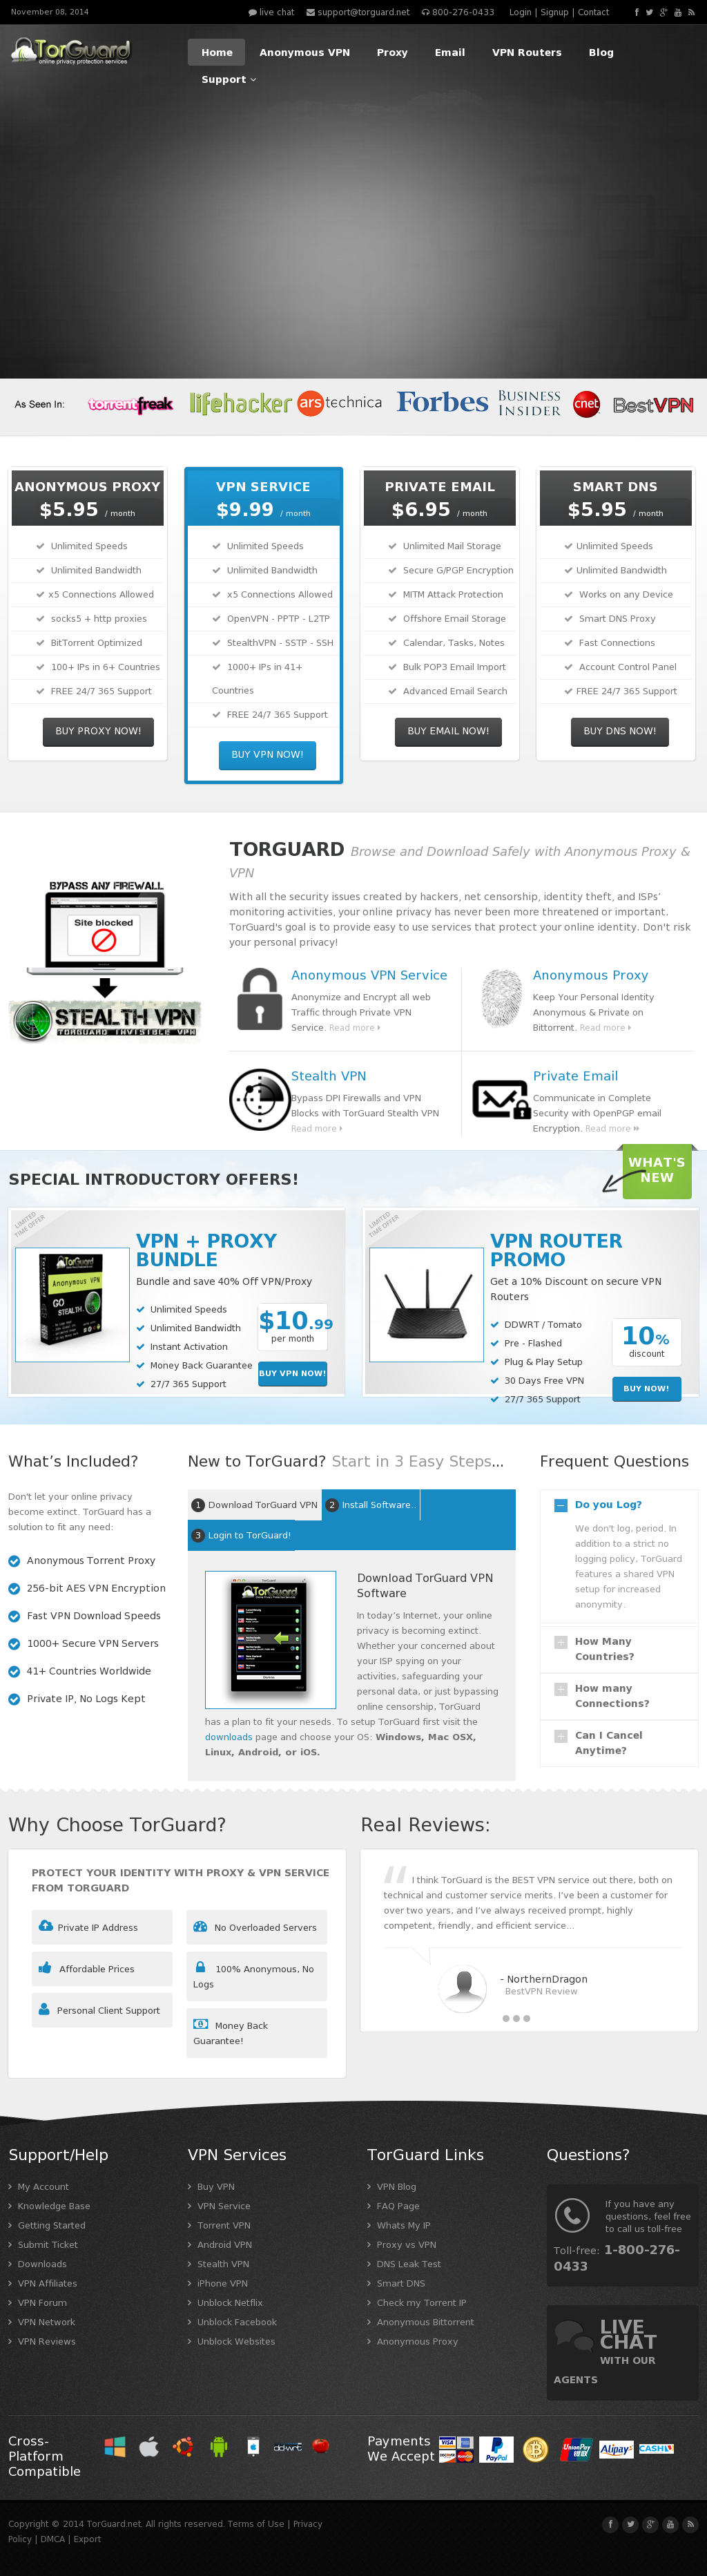 TorGuard Competitors, Revenue and Employees - Owler Company Profile